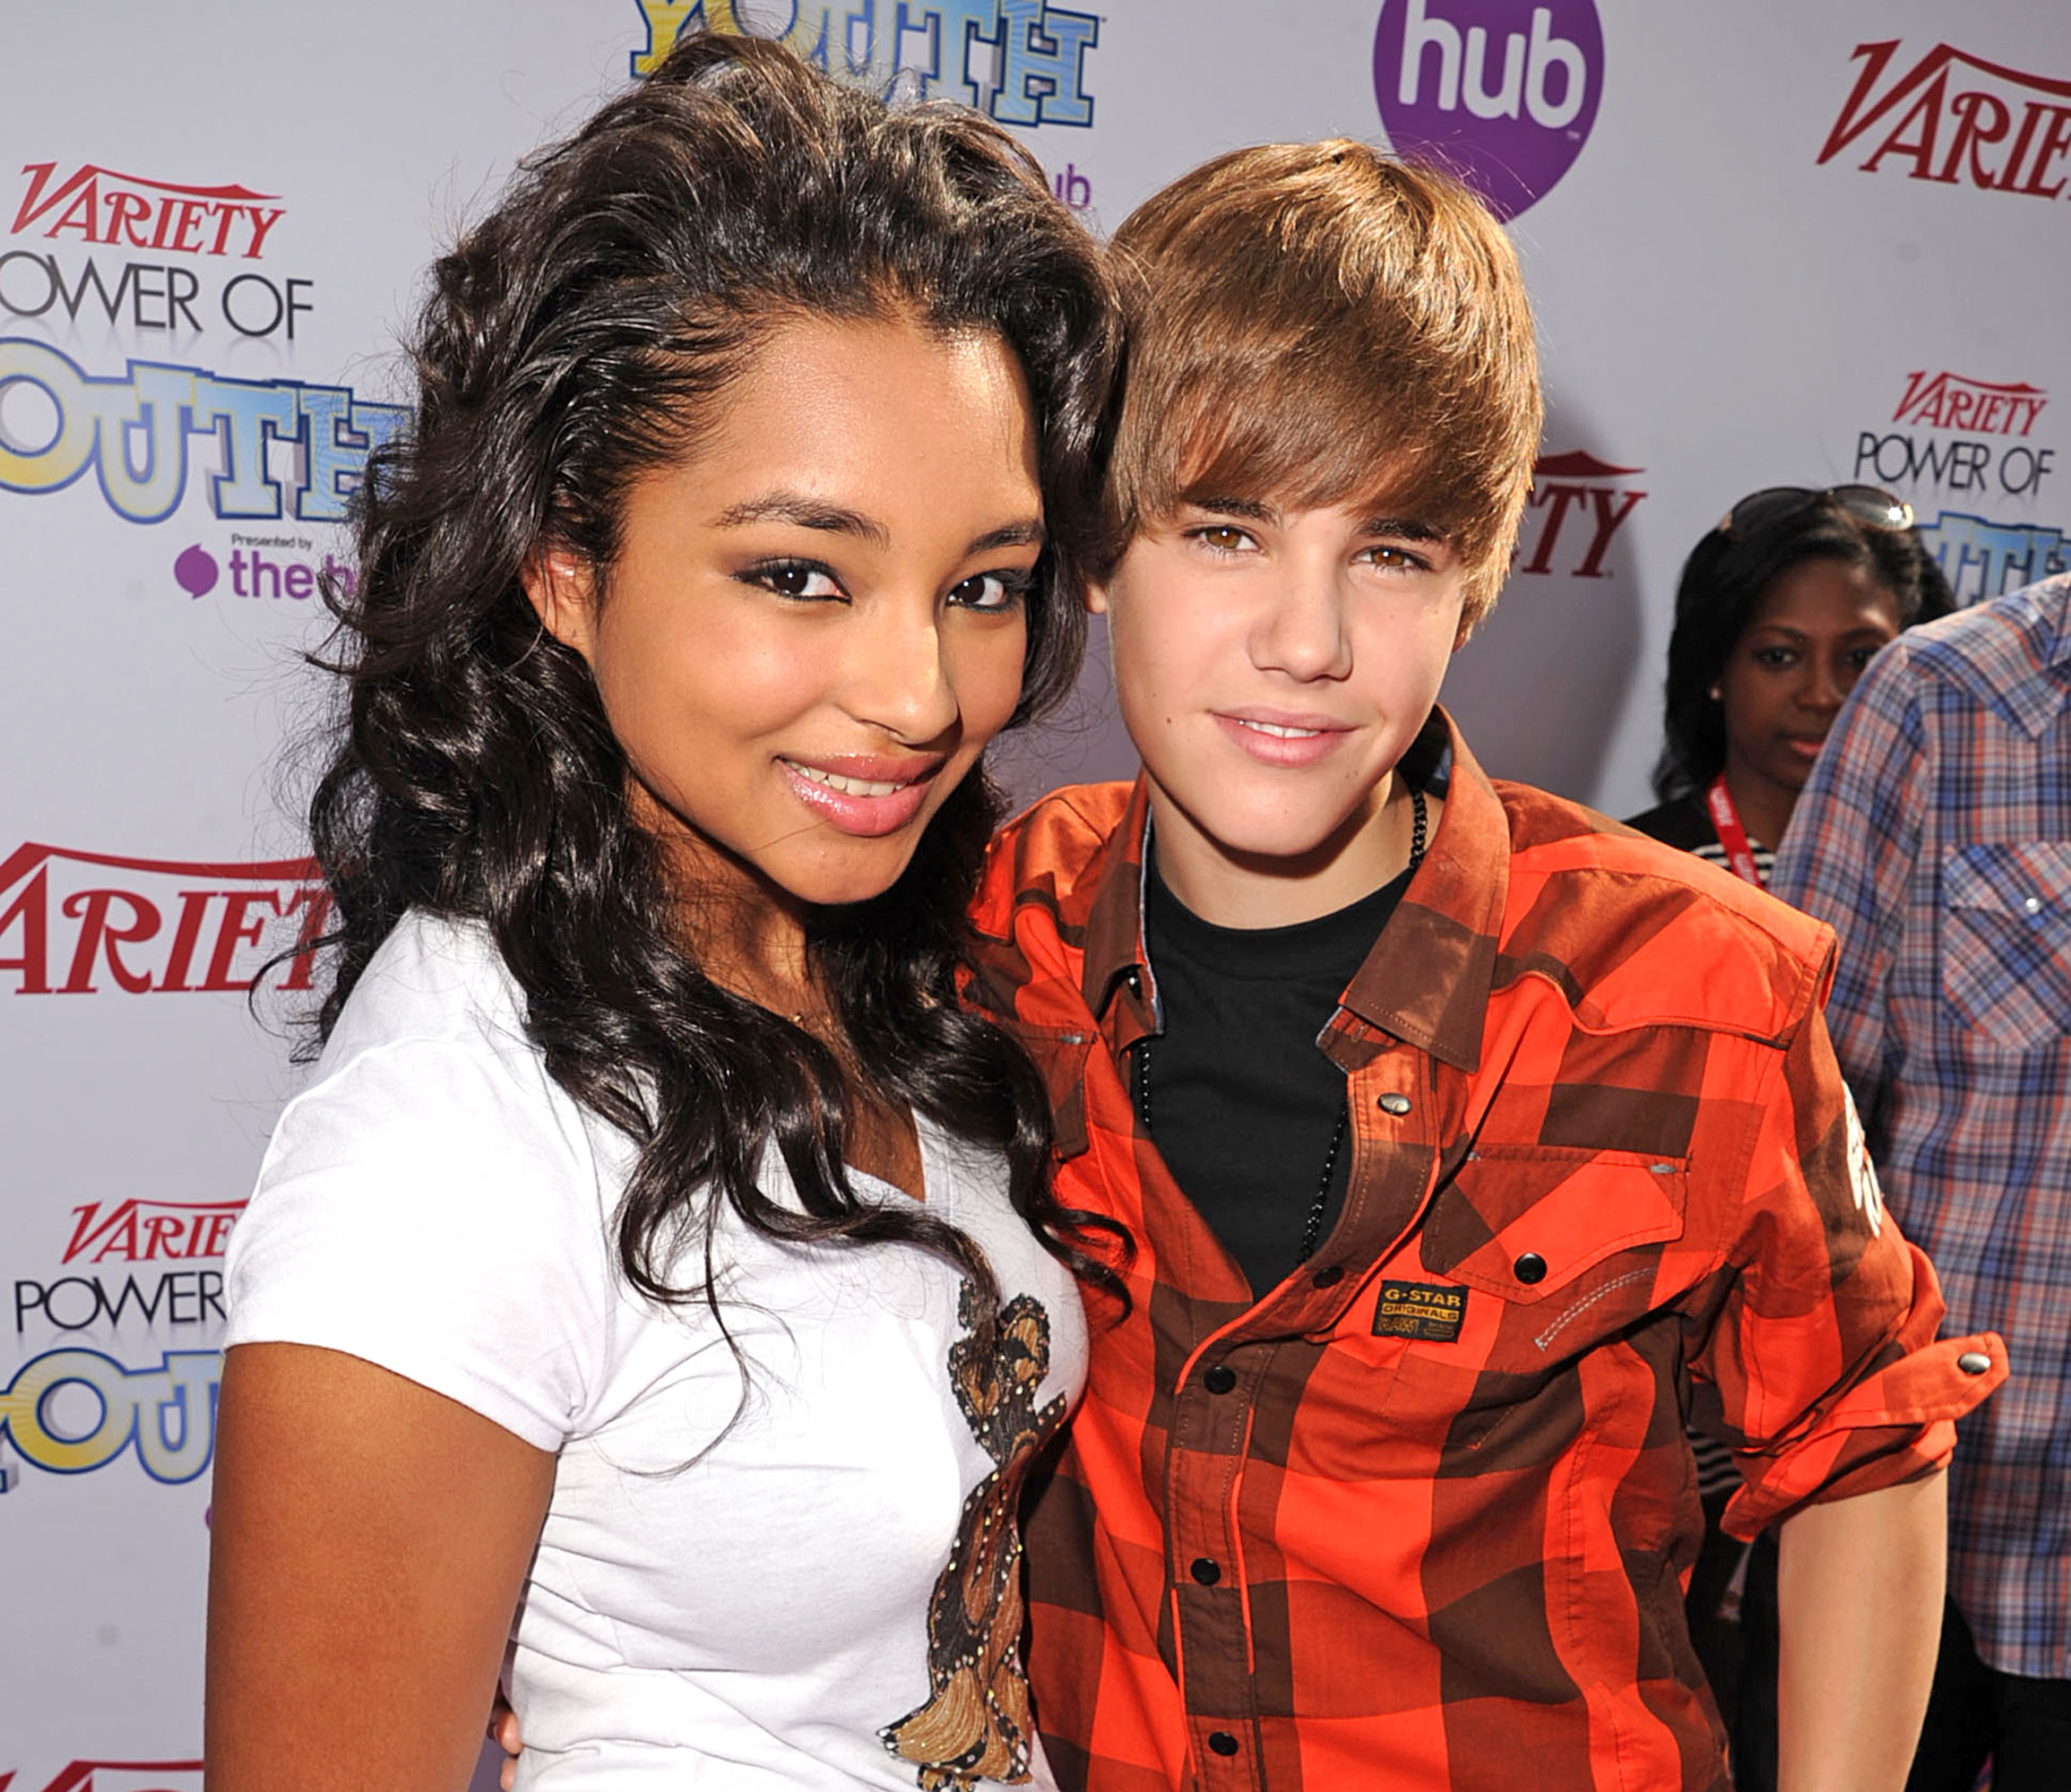 Who has justin bieber dated in the past